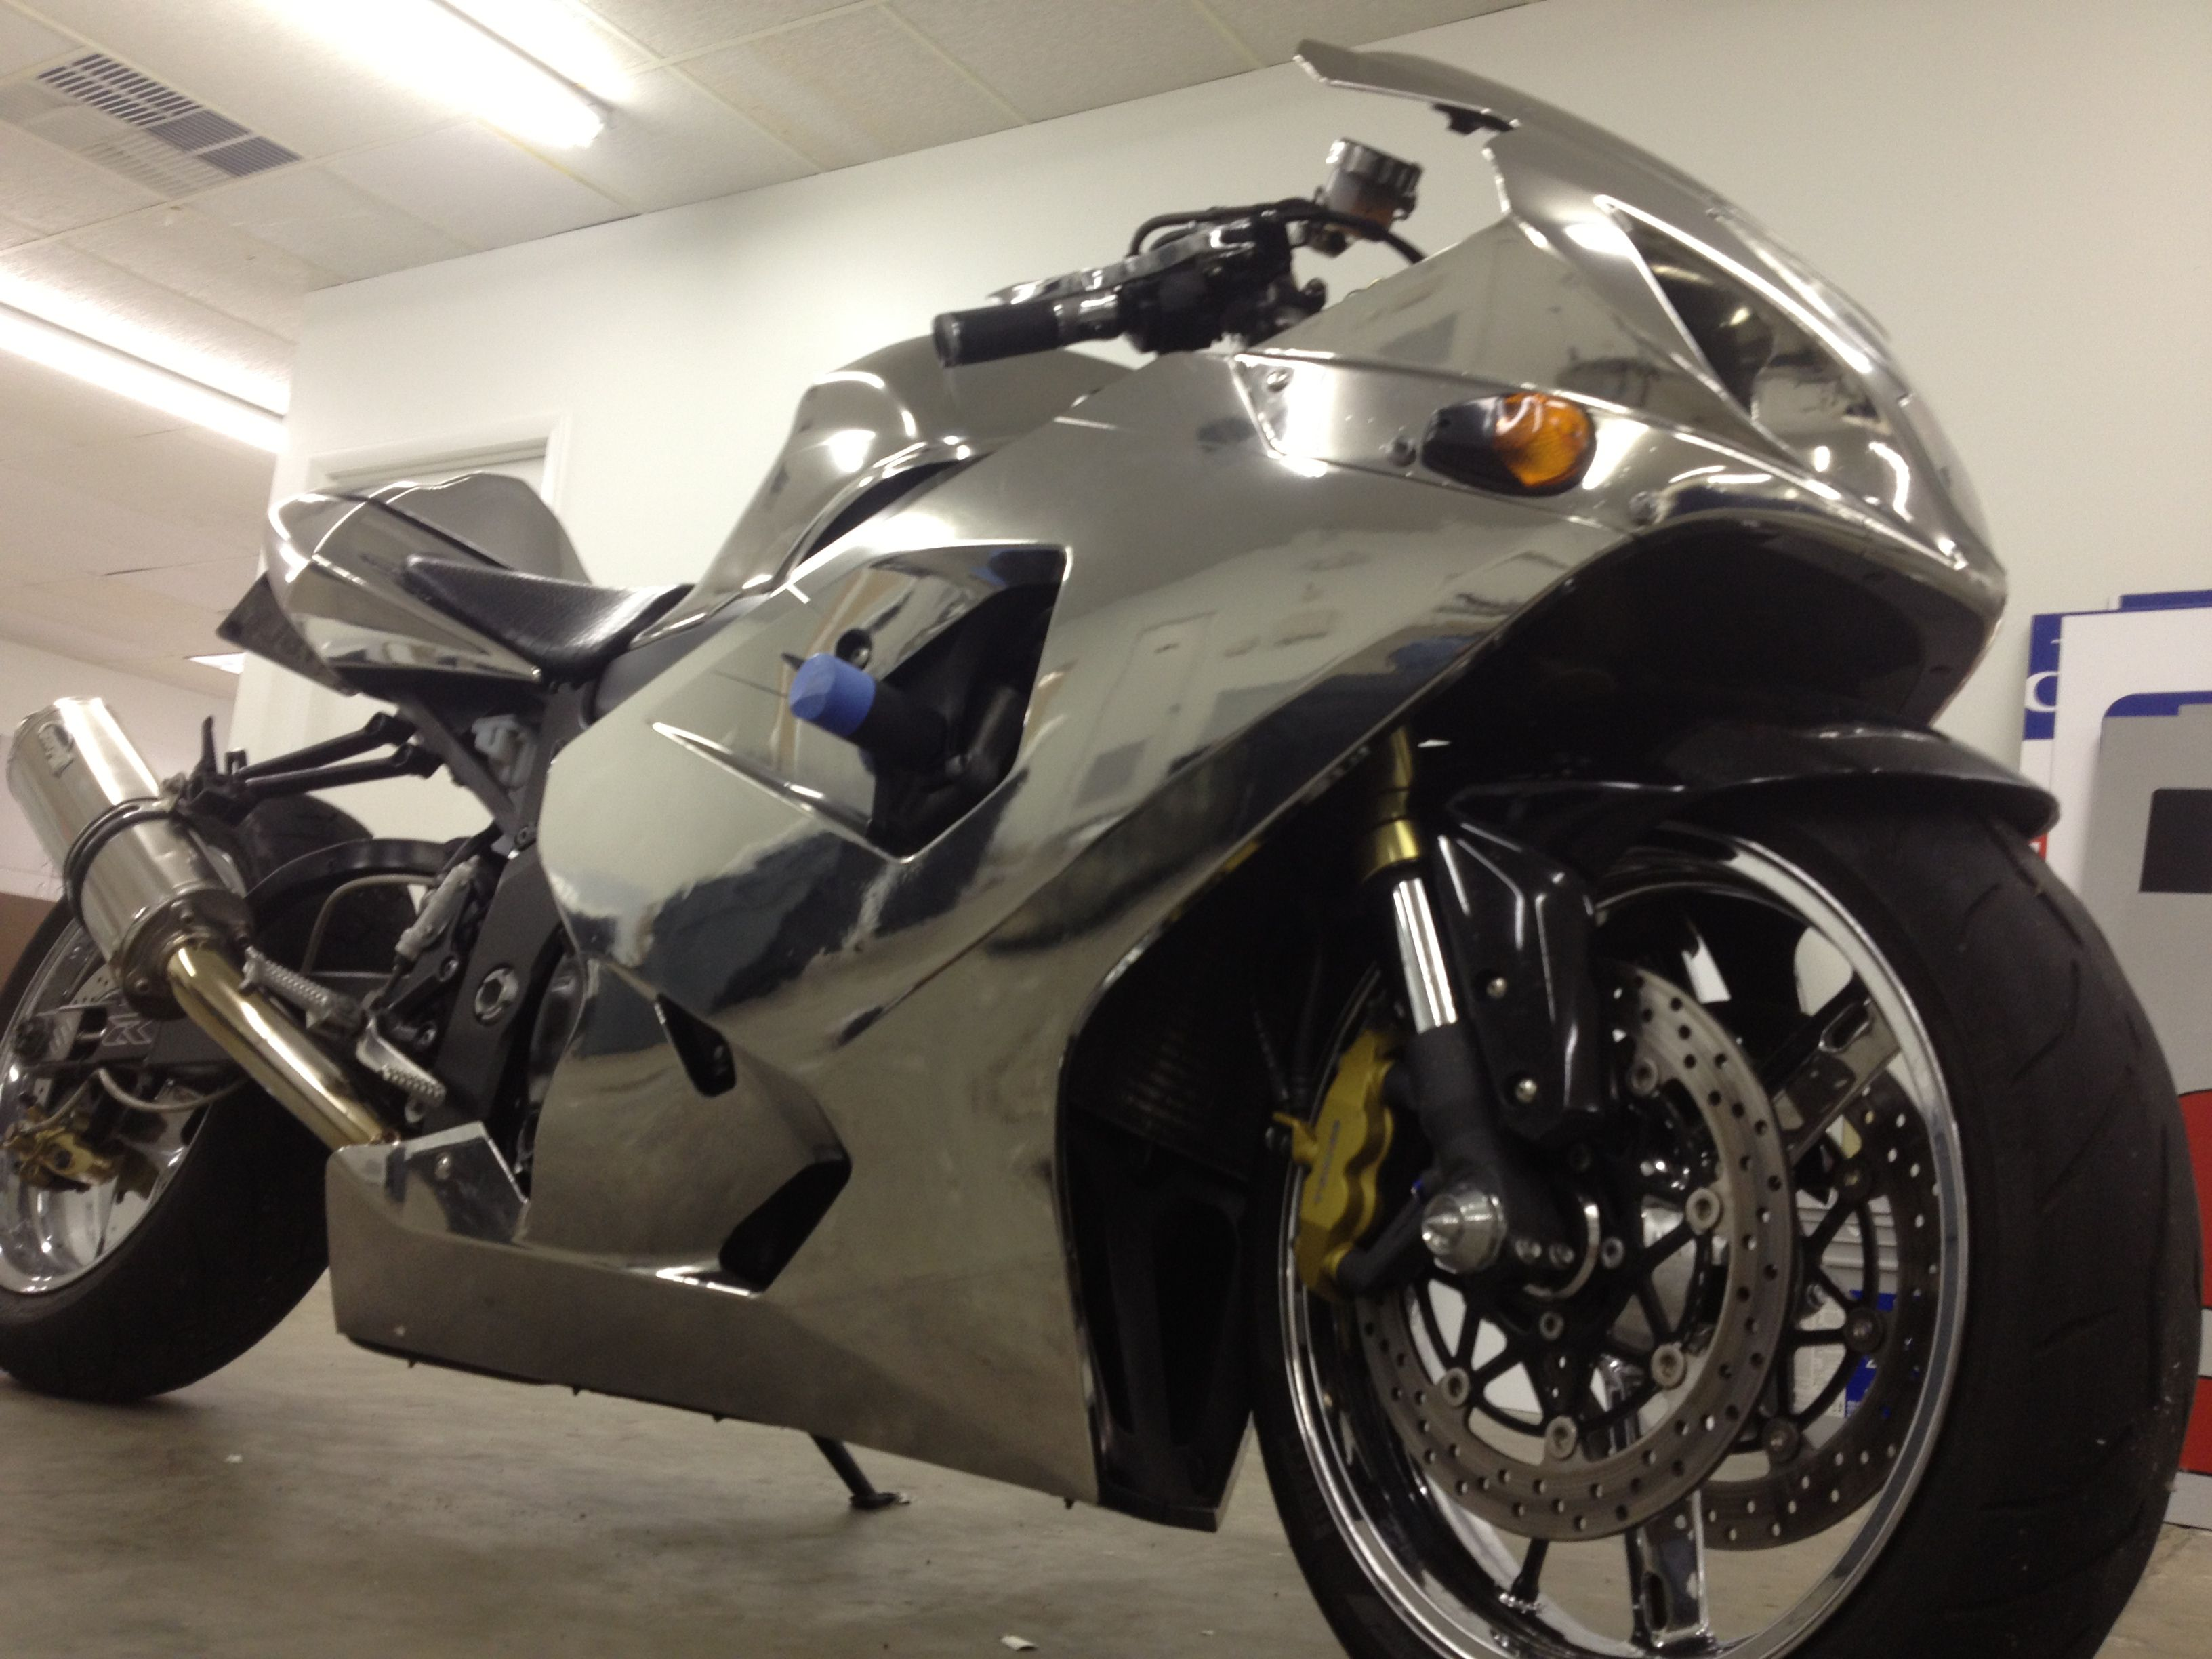 Chrome vinyl wrap on street bike